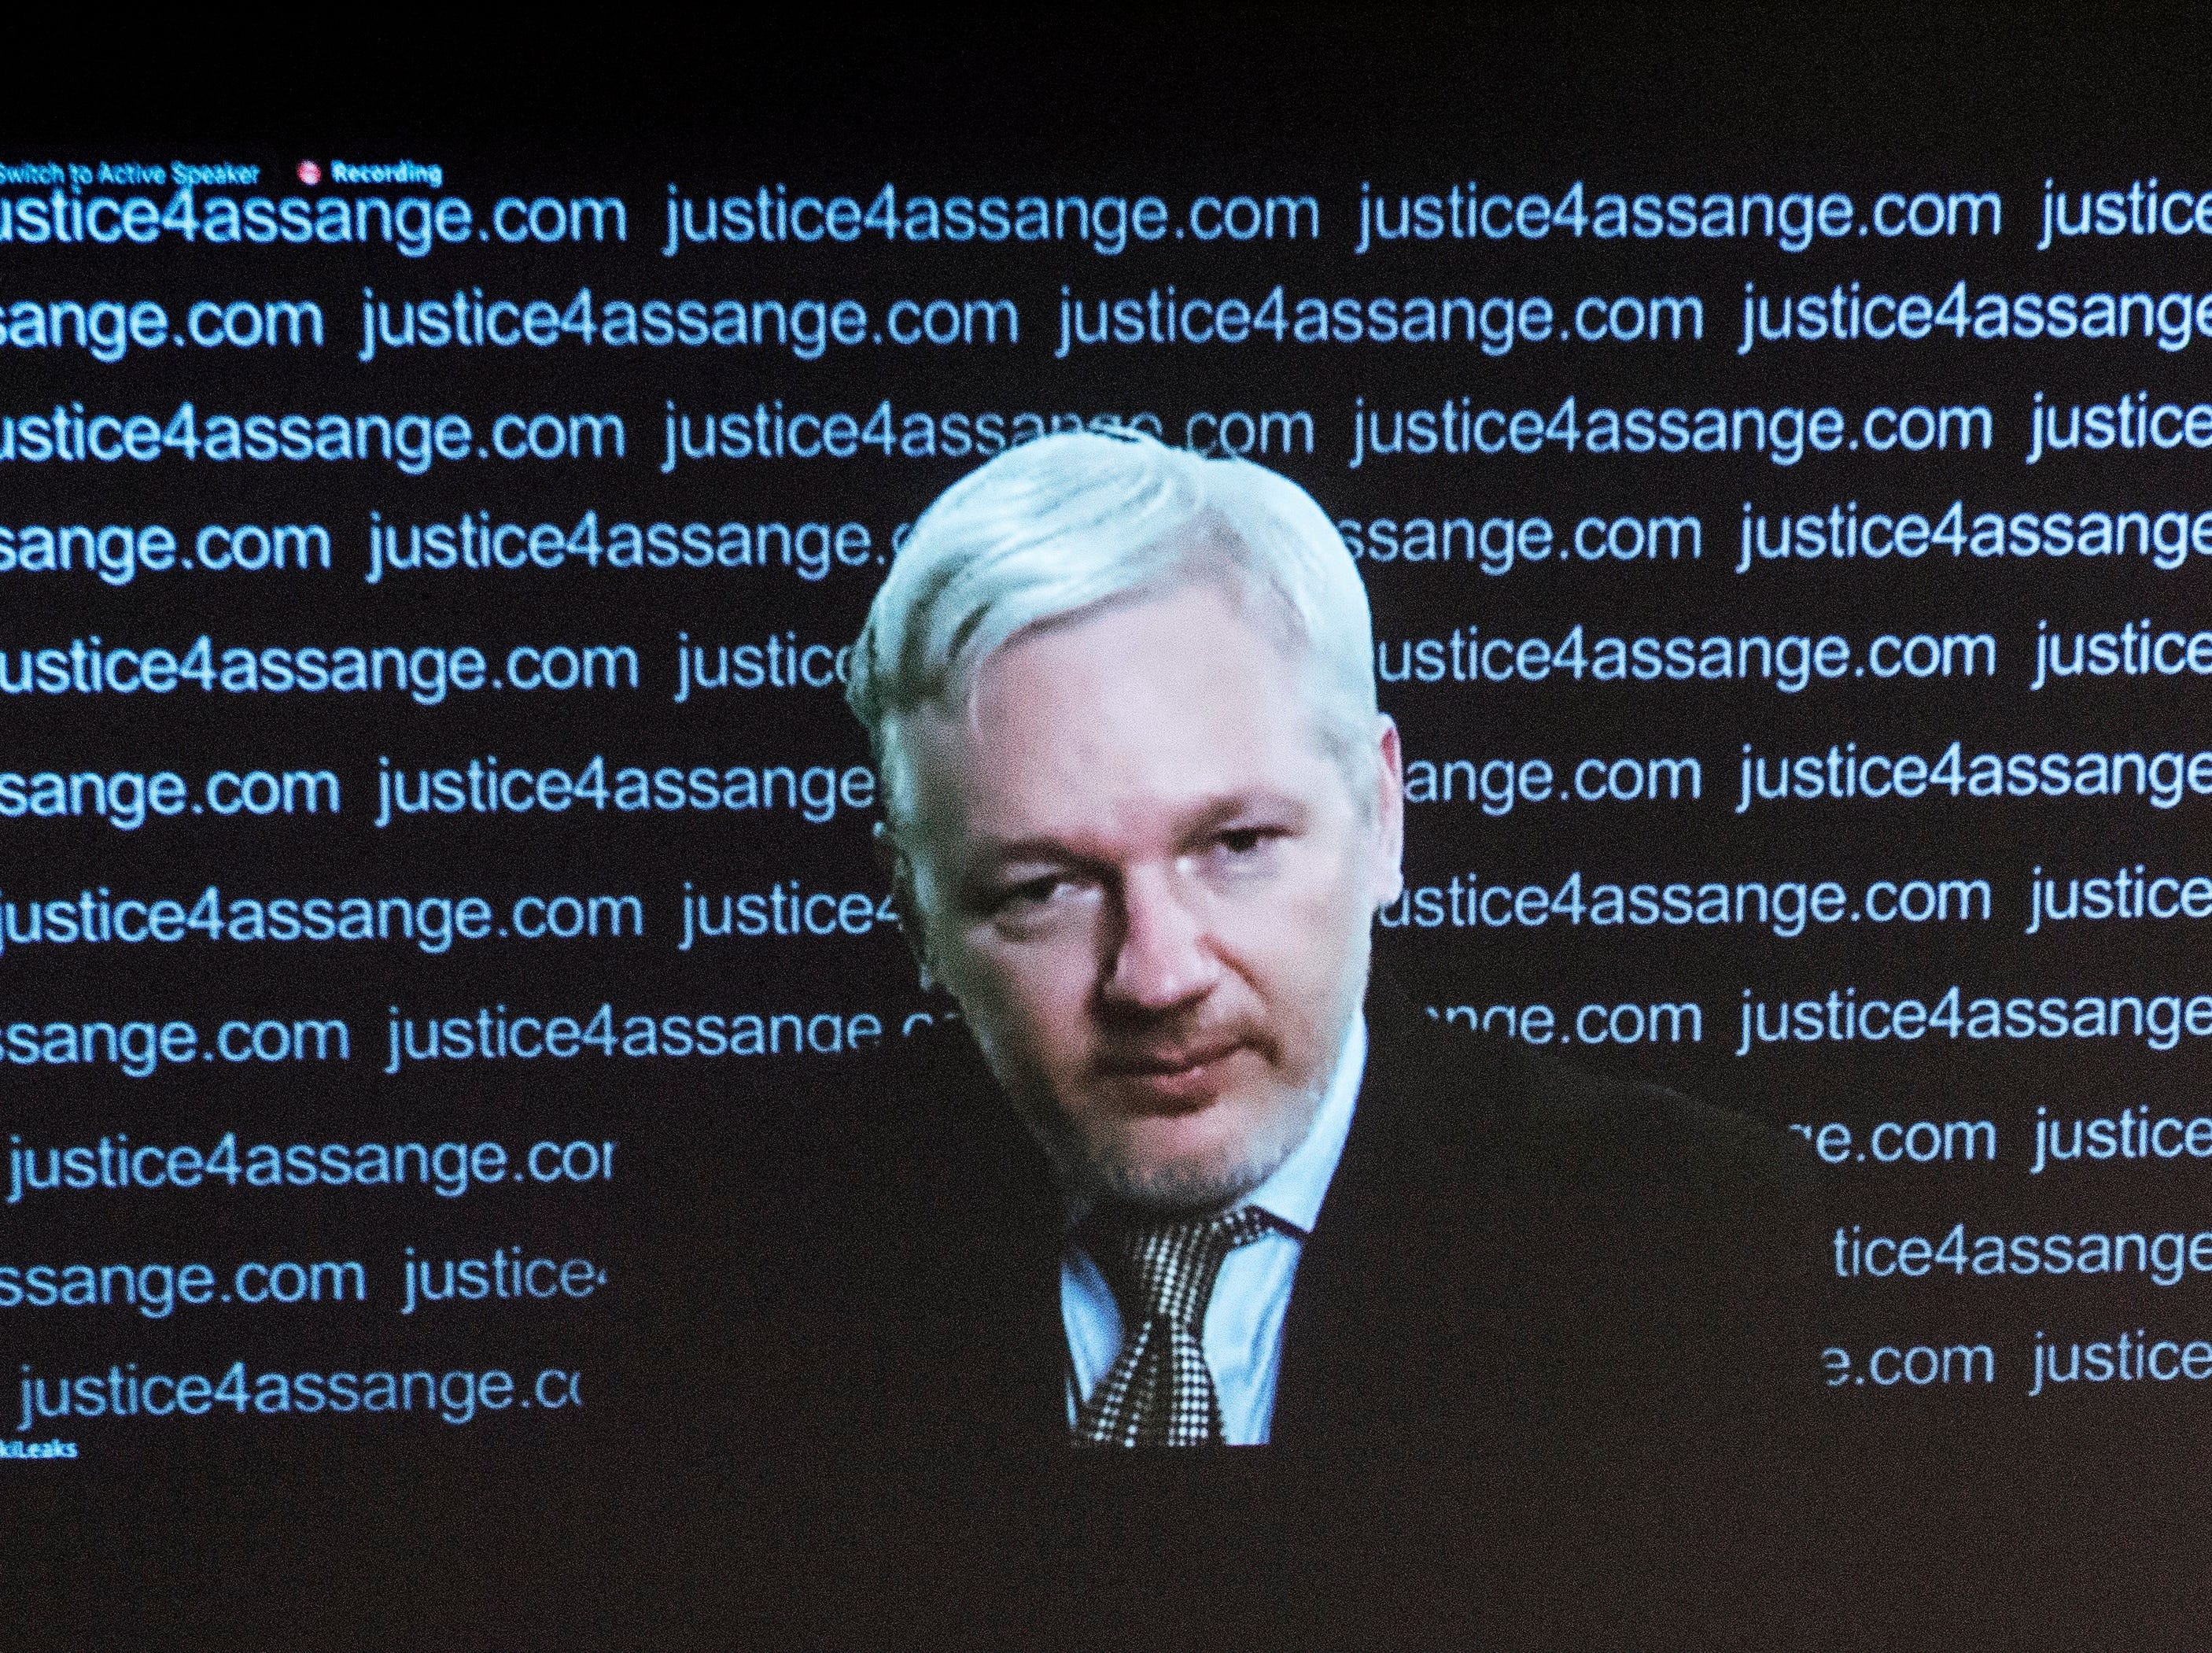 Julian Assange addresses a press conference at the Frontline Club via video link from the Ecuadorian embassy in 2016.